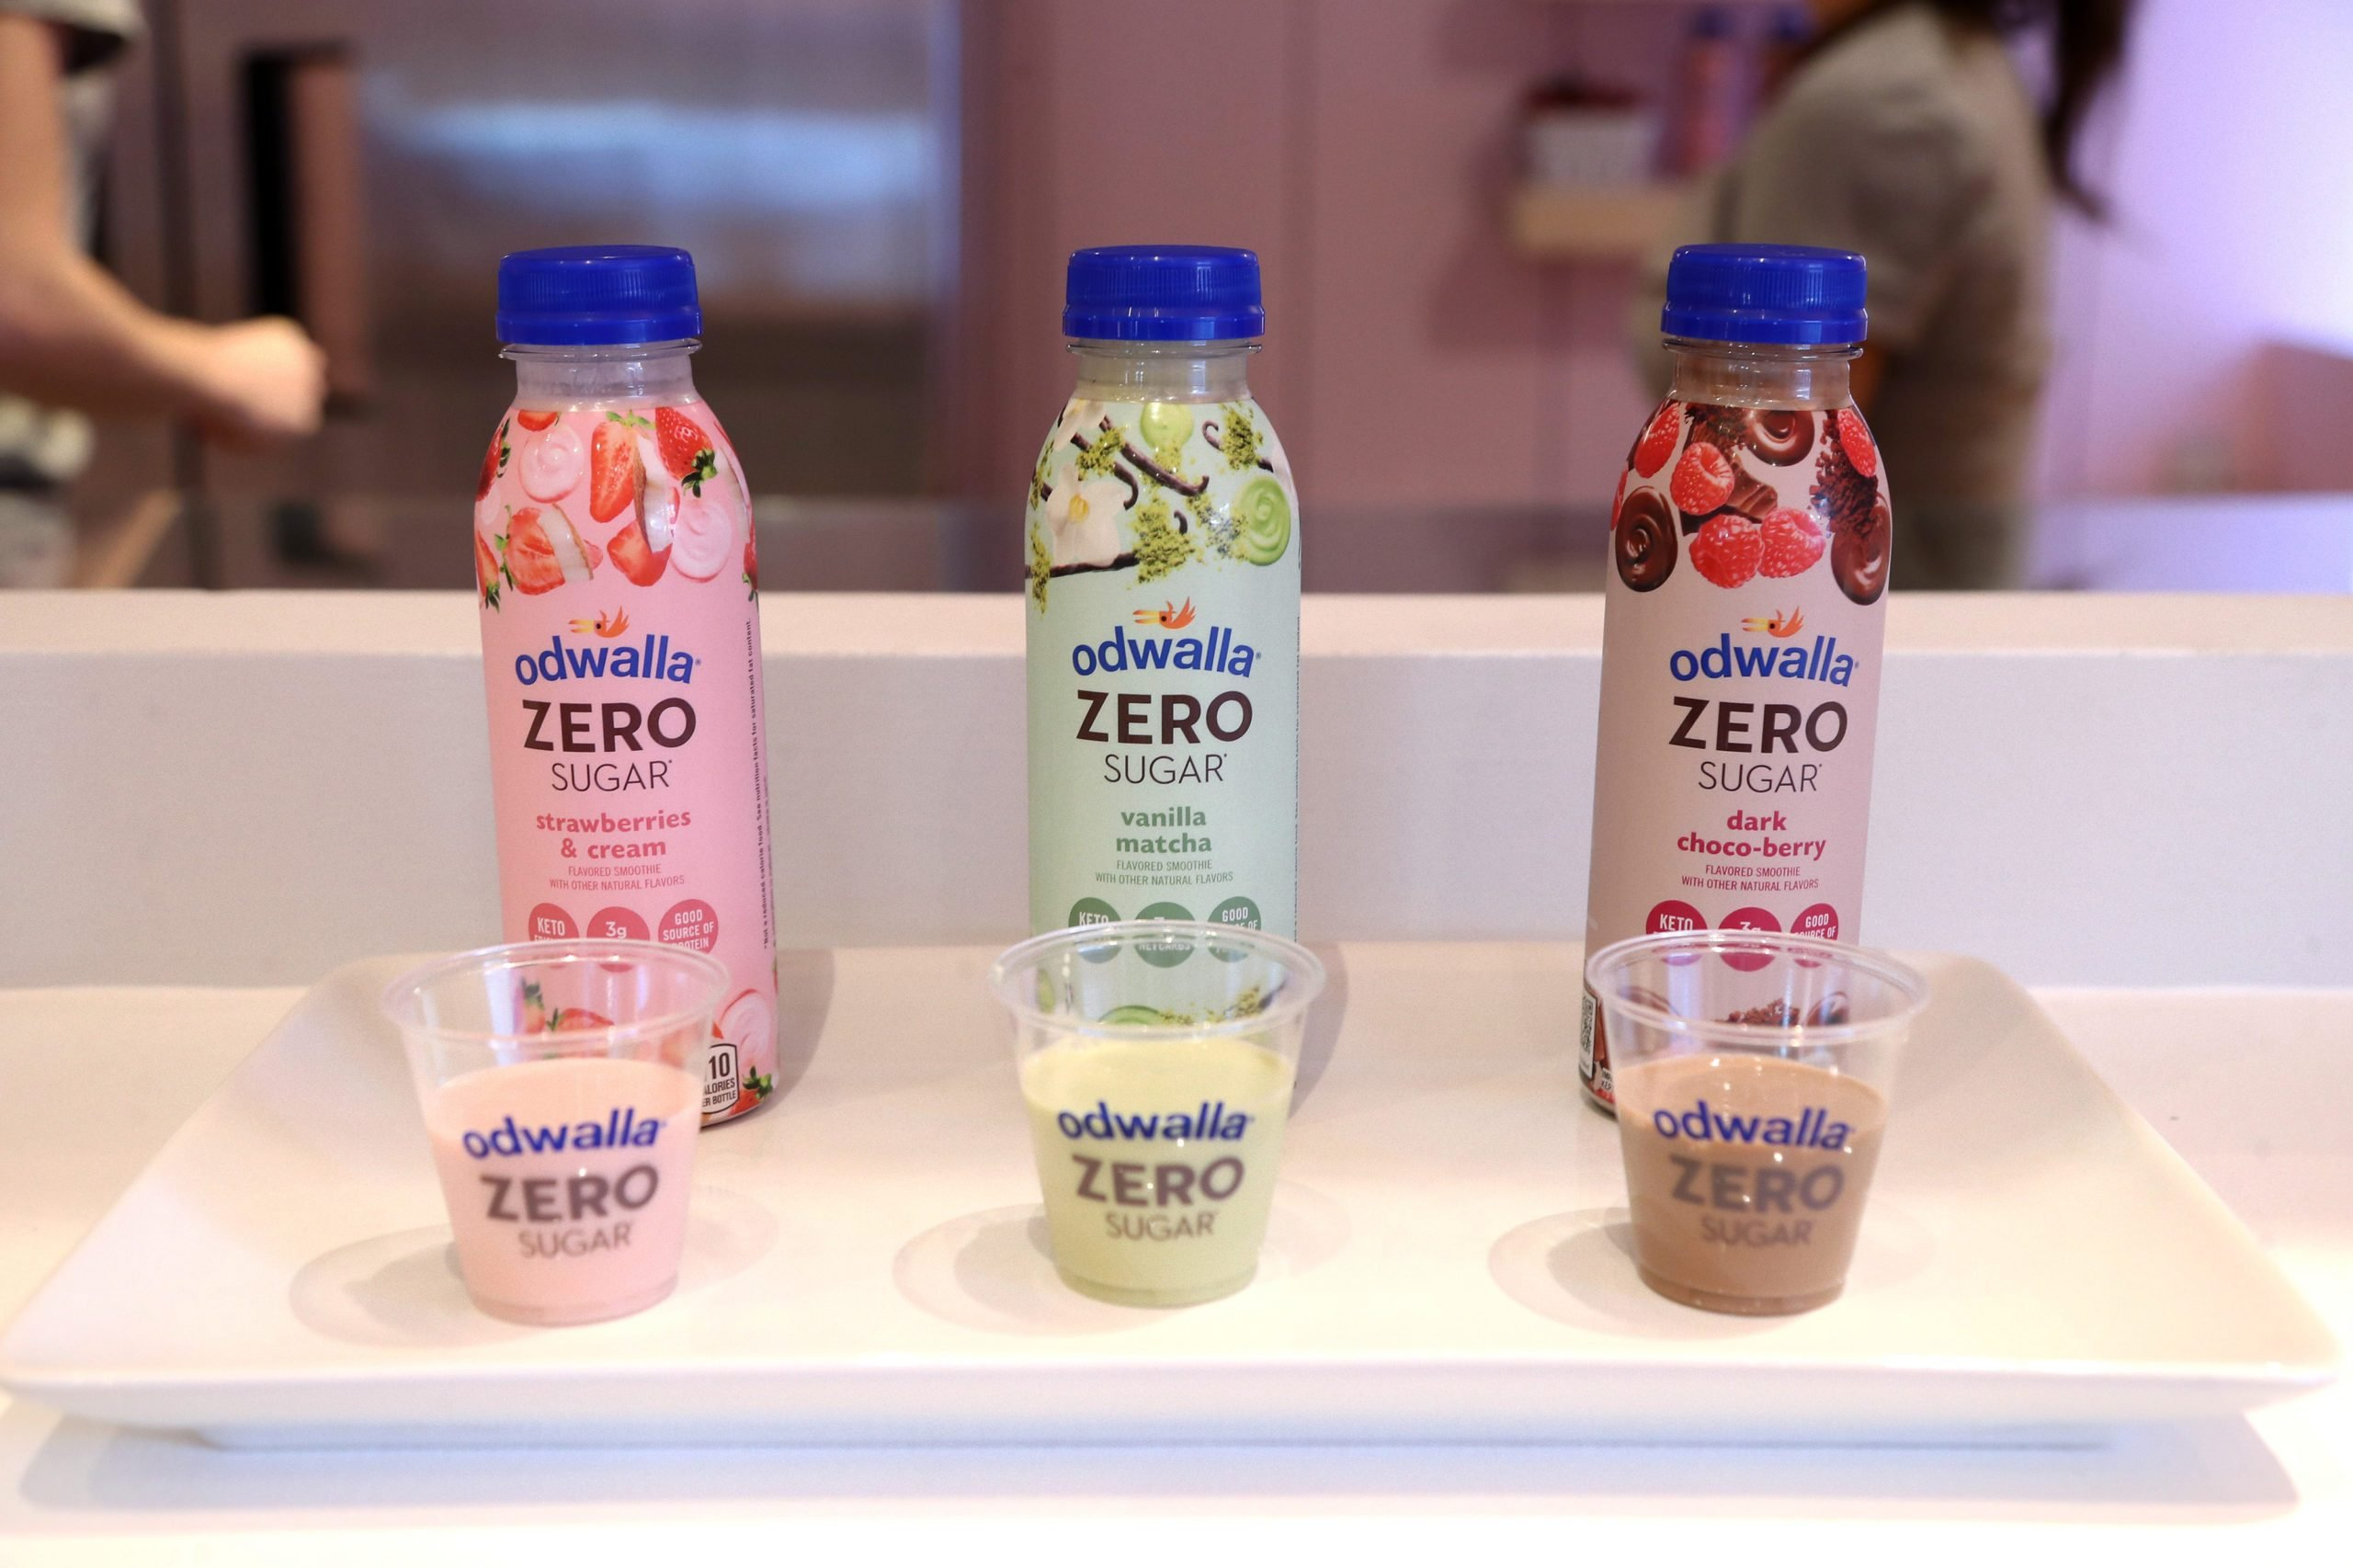 Odwalla 'Zero Sugar Shack' Launch Event